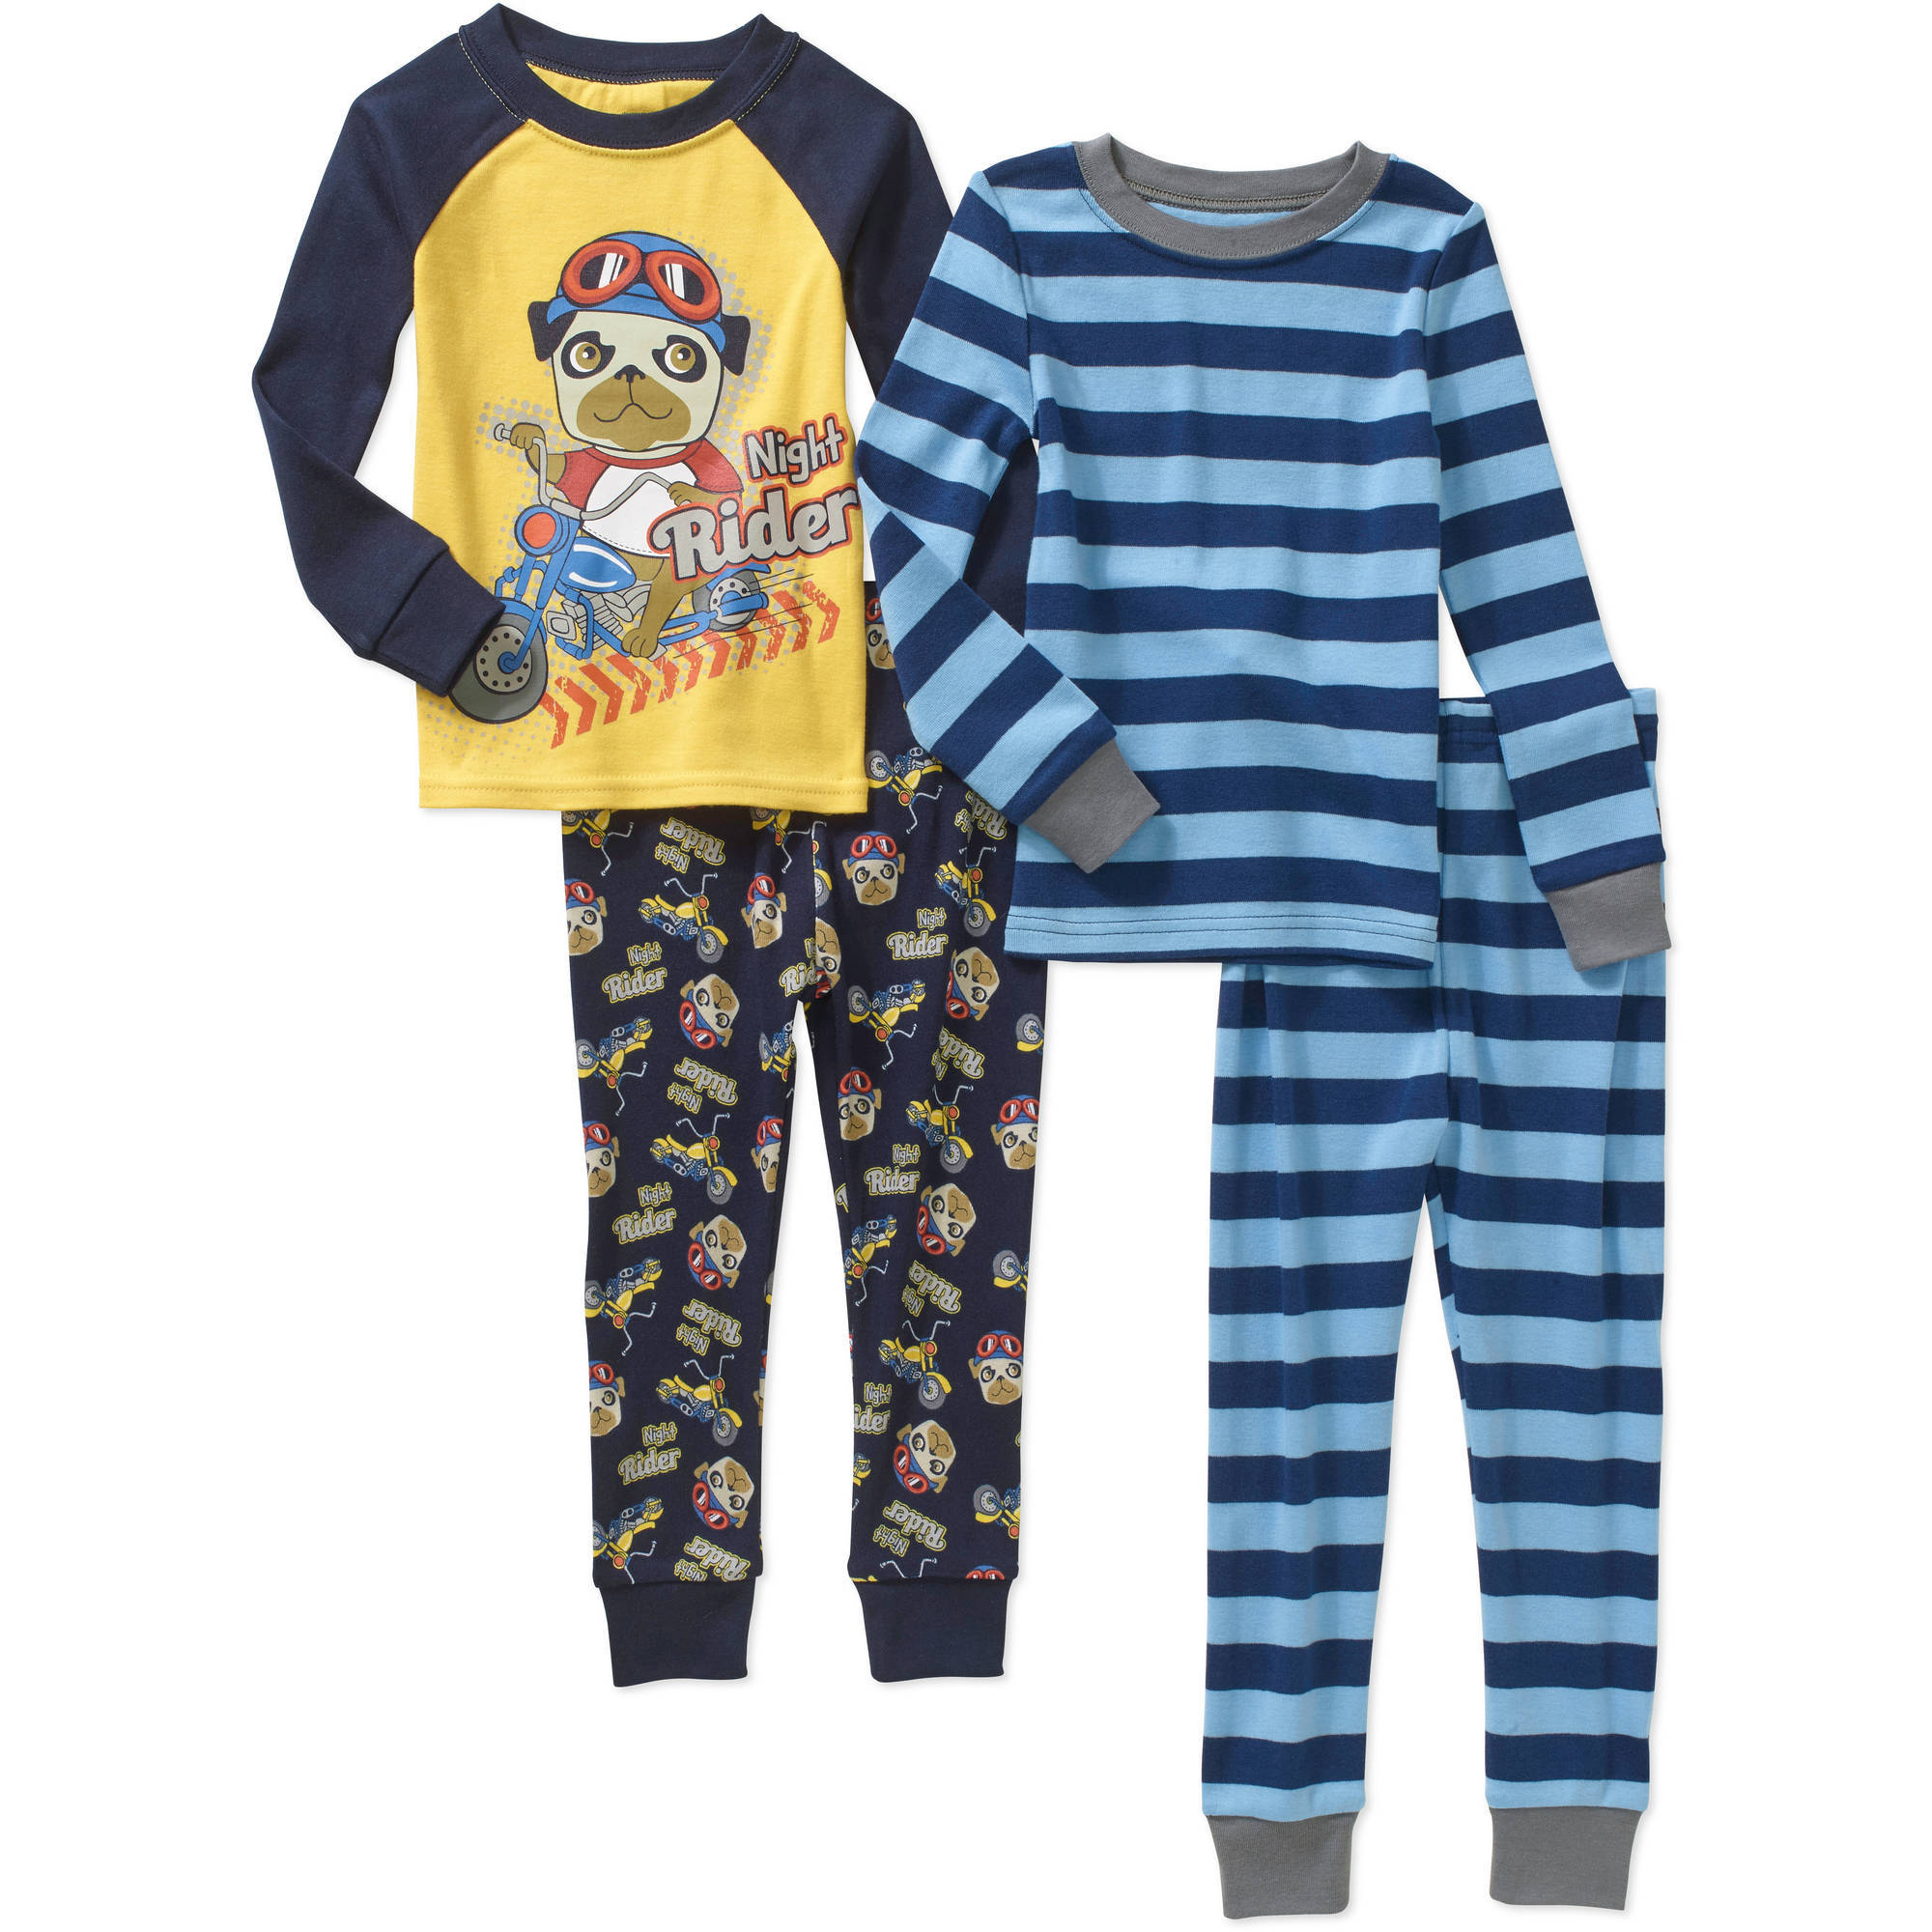 Toddler Boy Cotton Tight Fit Pajamas, 4-piece set